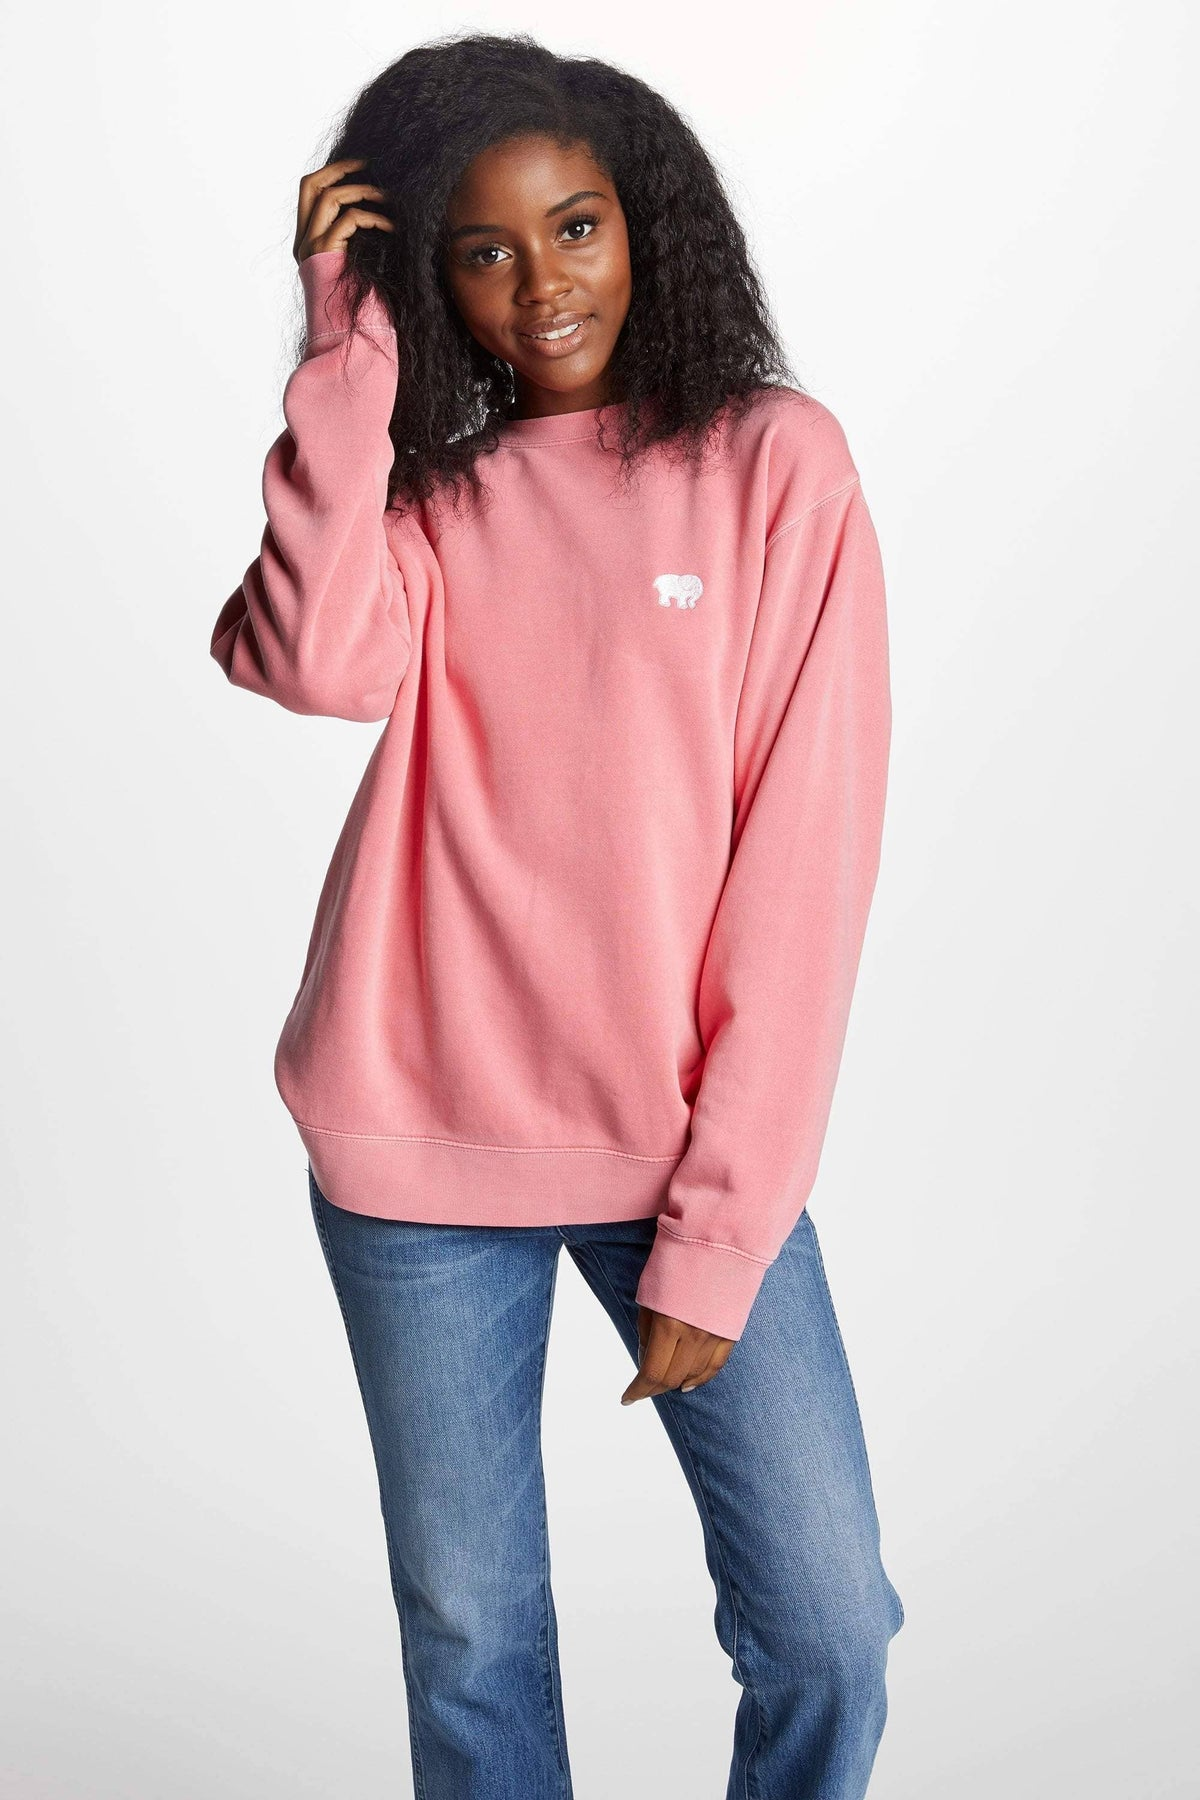 Ivory Ella Women's Sweatshirts XS Pink Embroidered Crew Neck Sweatshirt